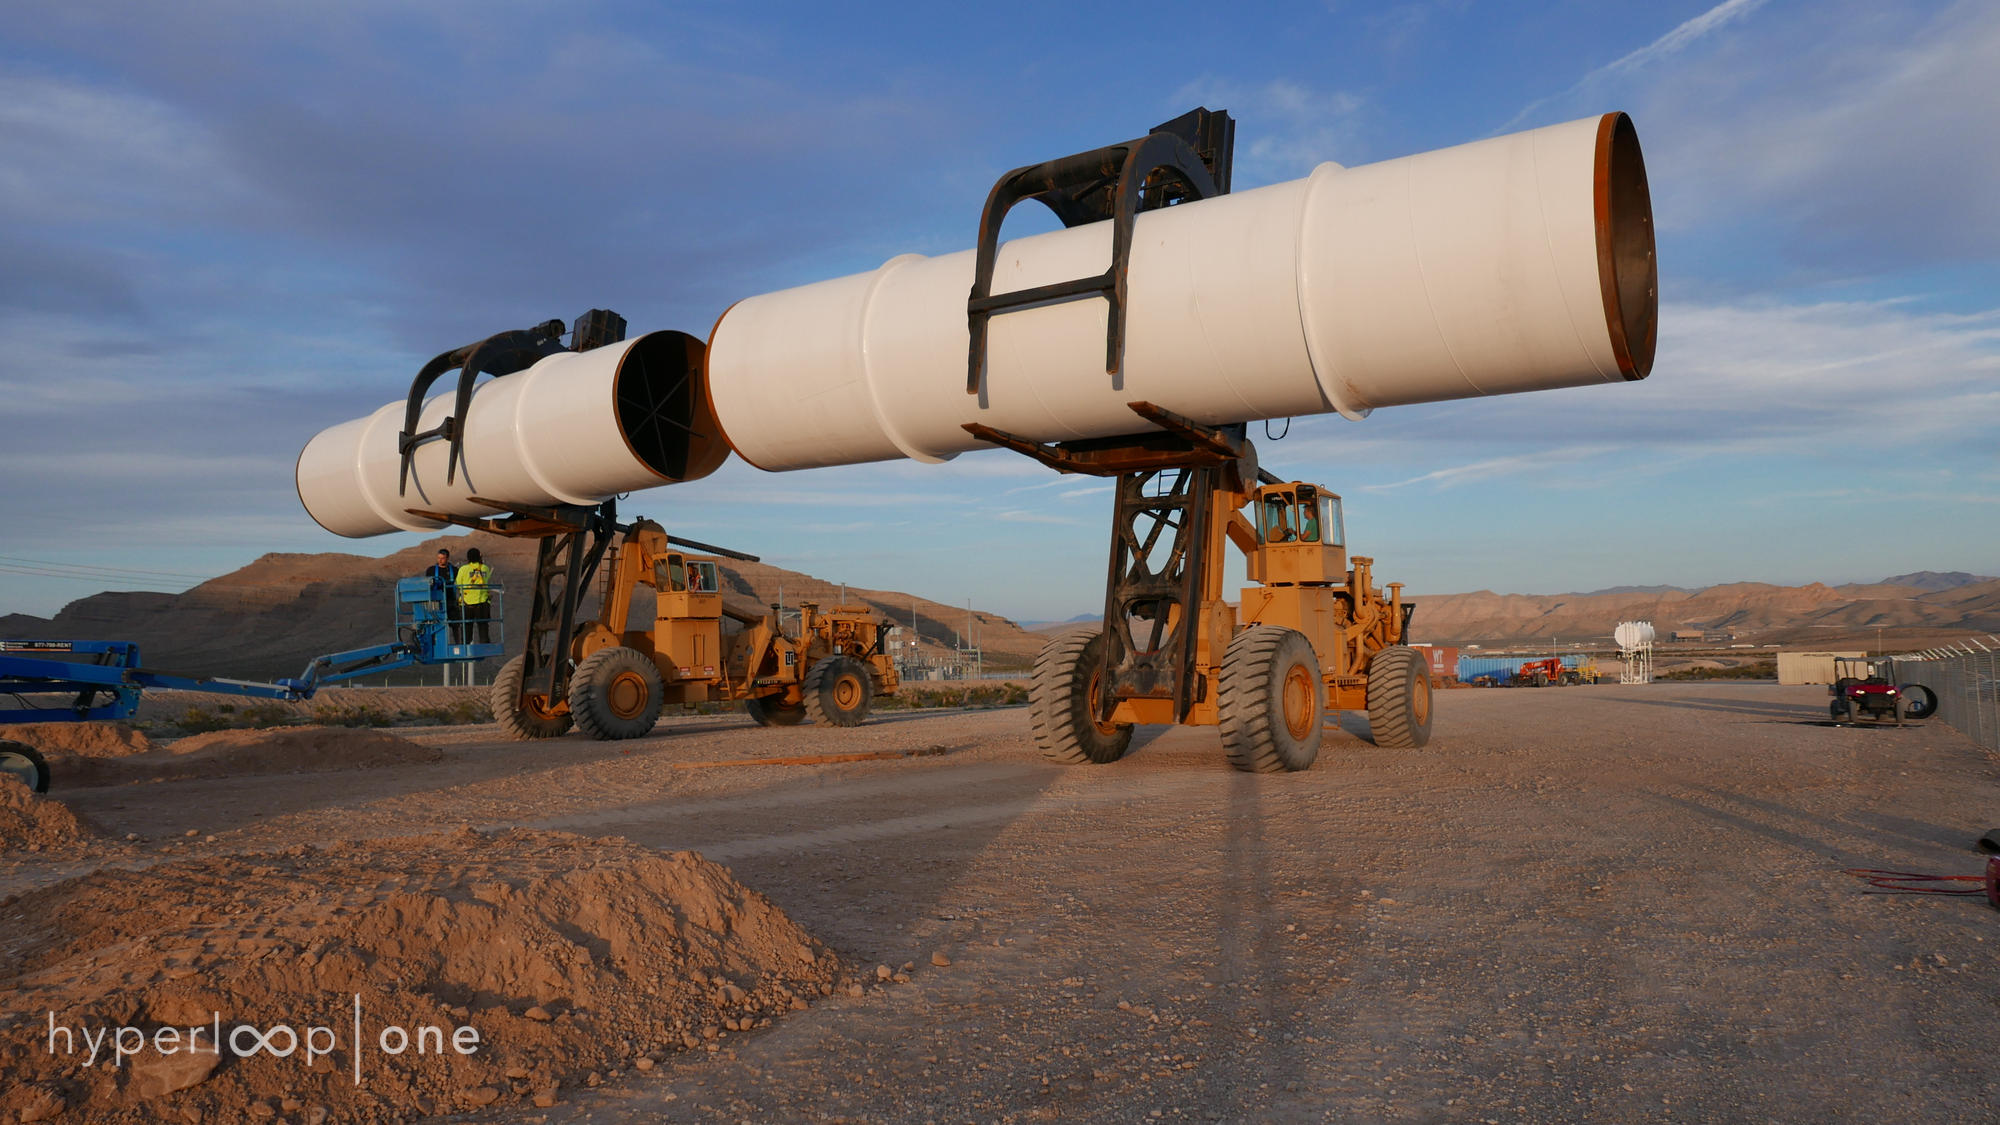 Hyperloop One's next step is to test airlocks for pod entry and exit